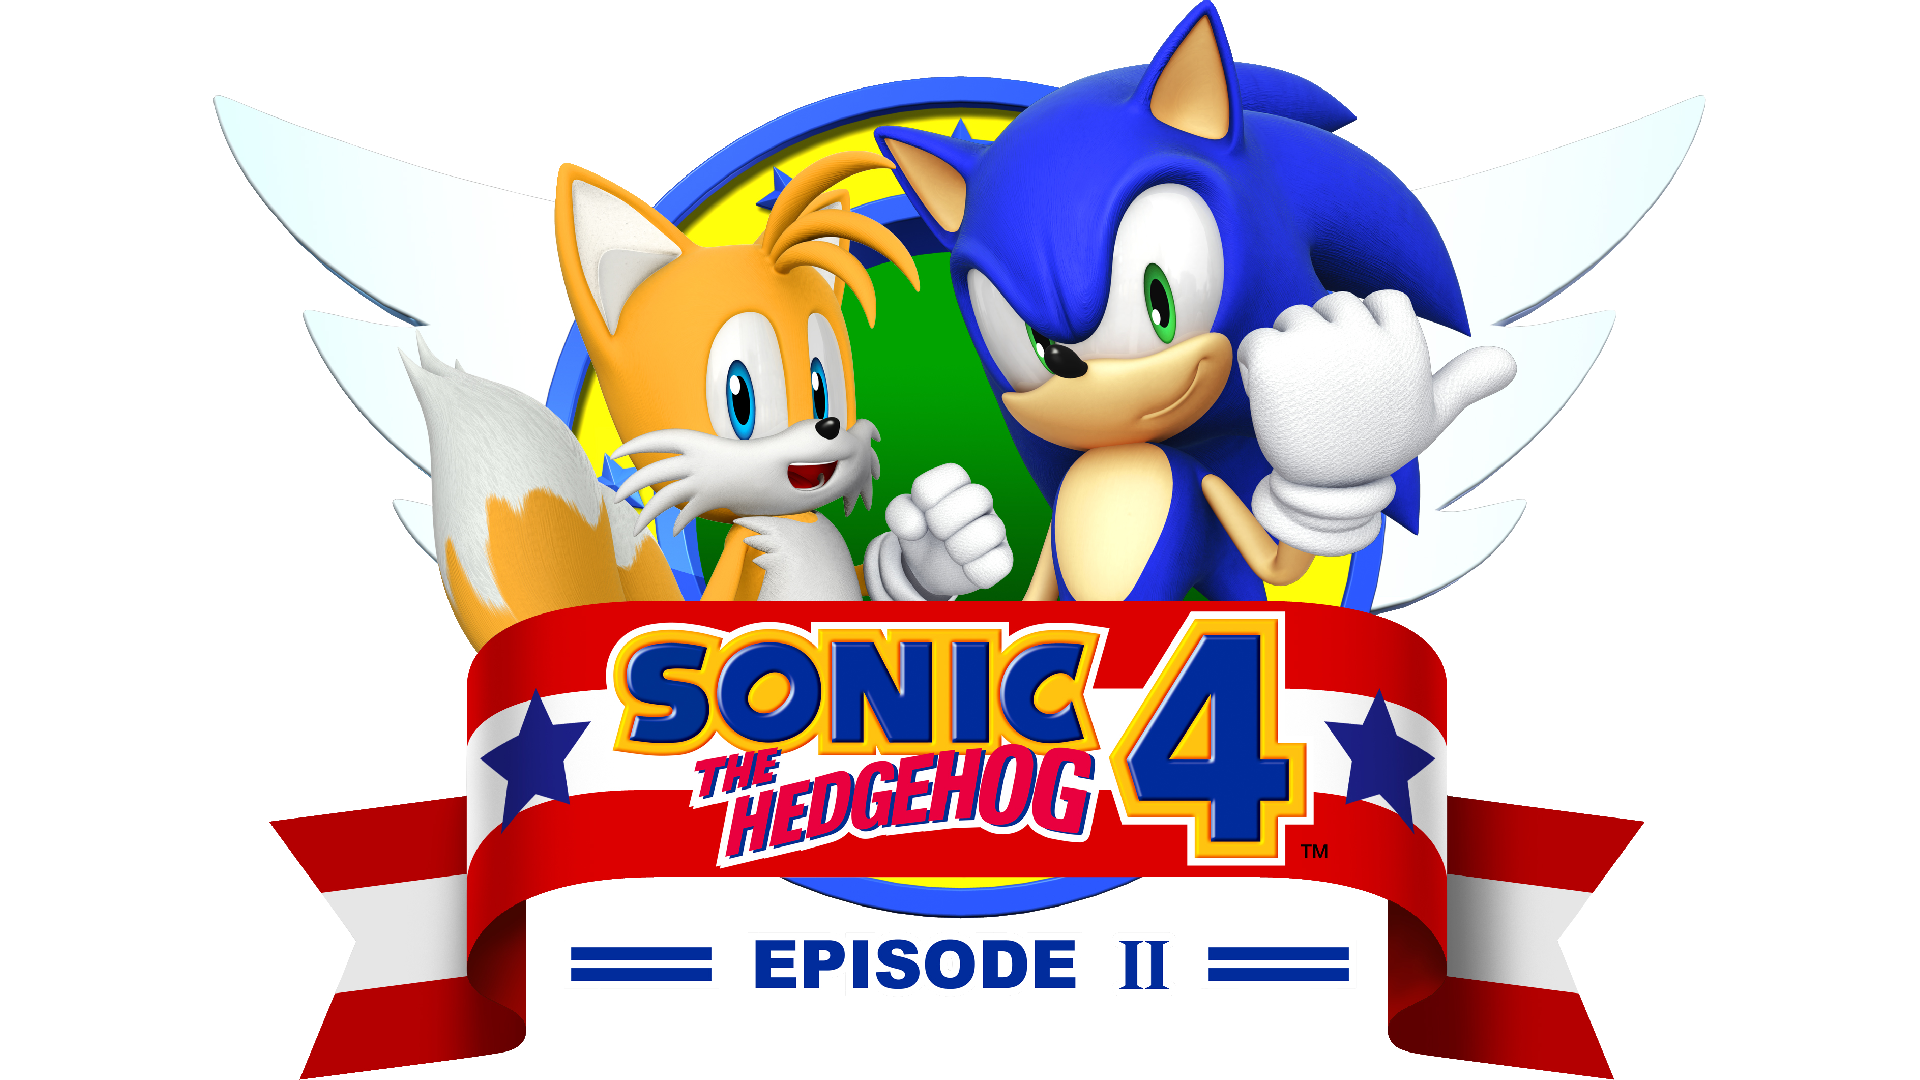 Sonic the Hedgehog 4: Episode II Logo